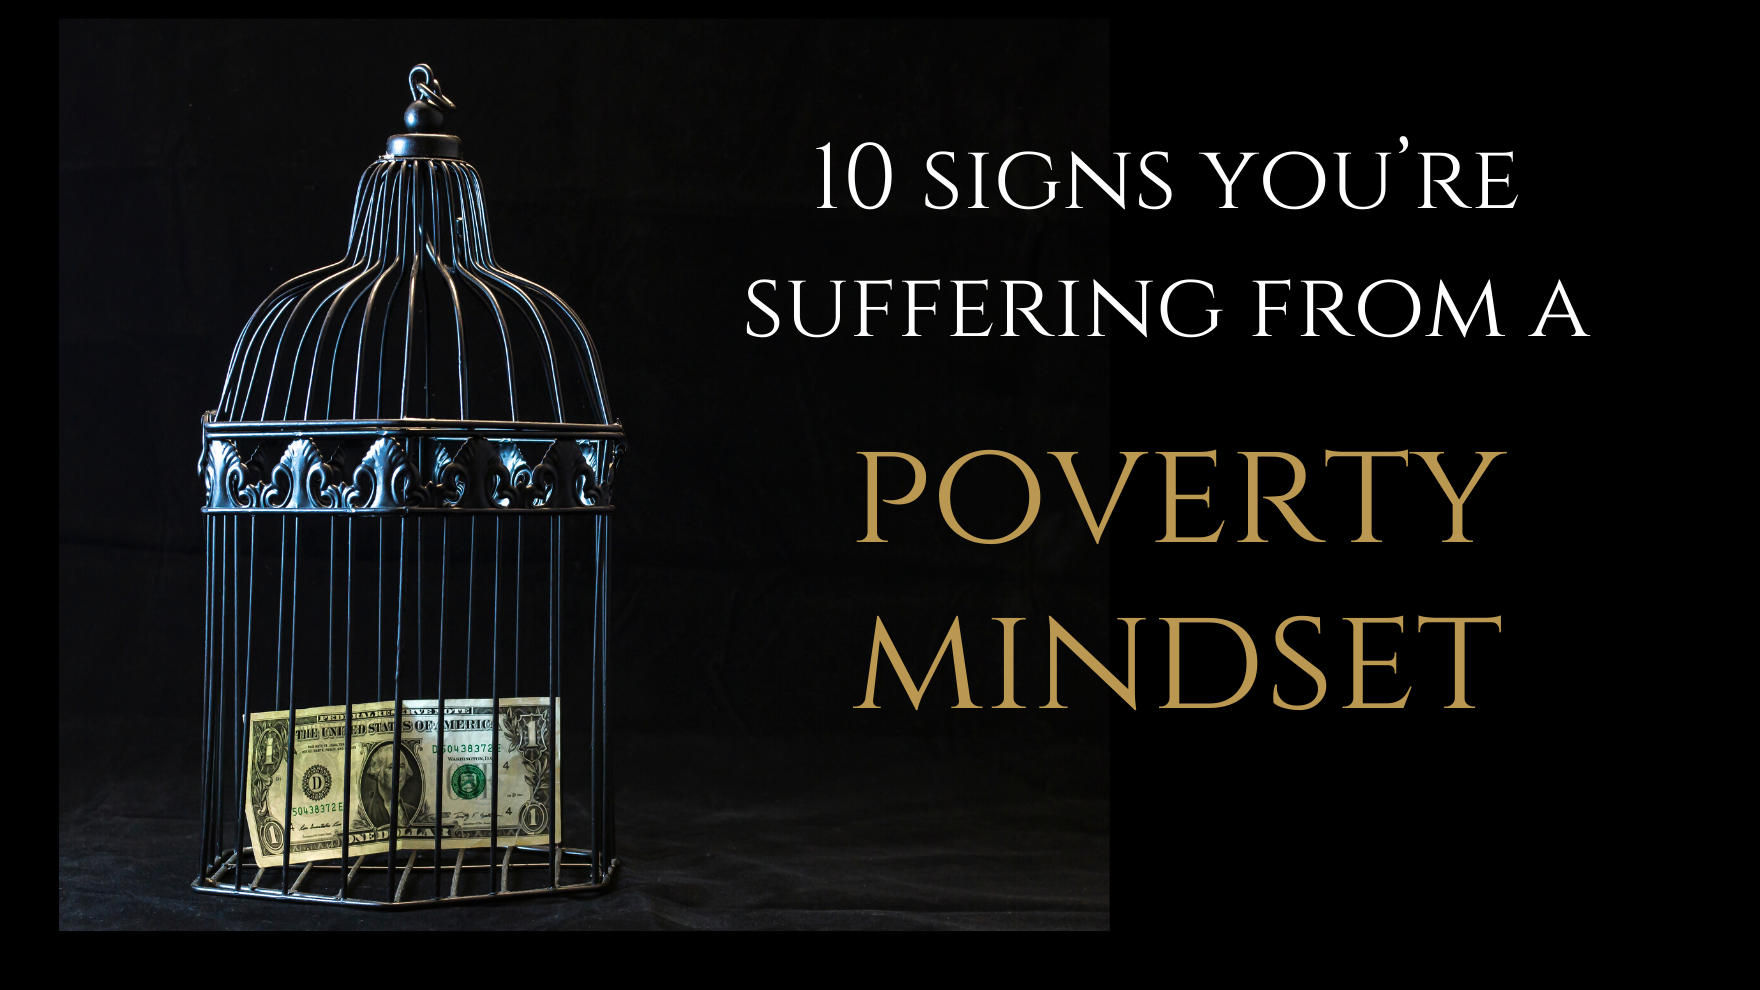 10 signs you're suffering from a poverty mindset.png